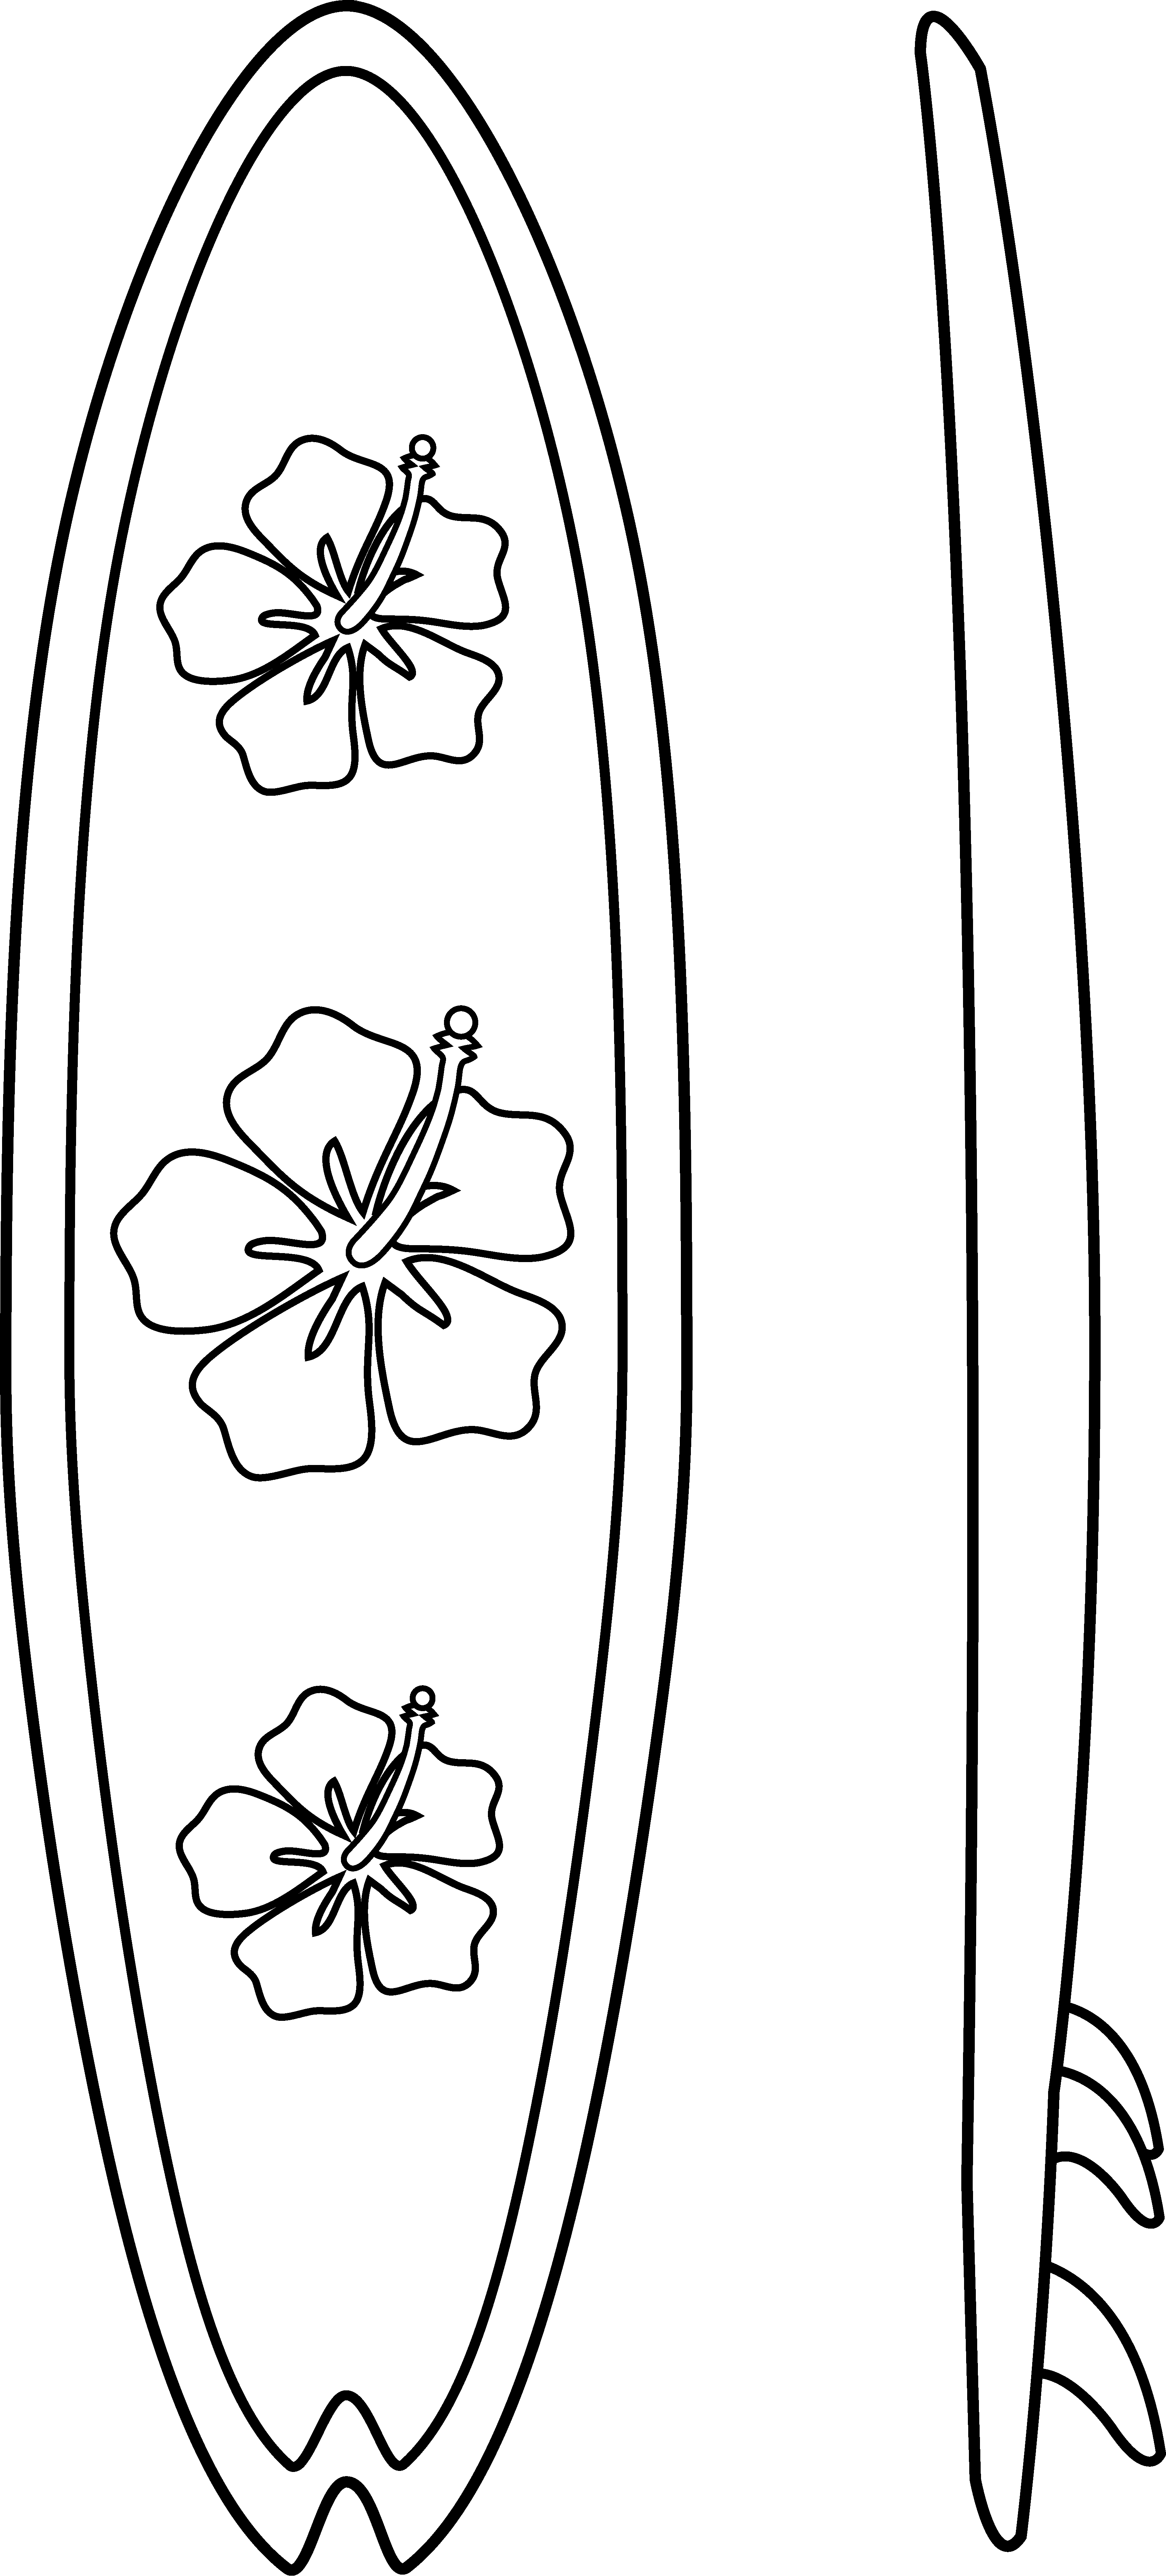 This is a picture of Invaluable Surfing Coloring Pages